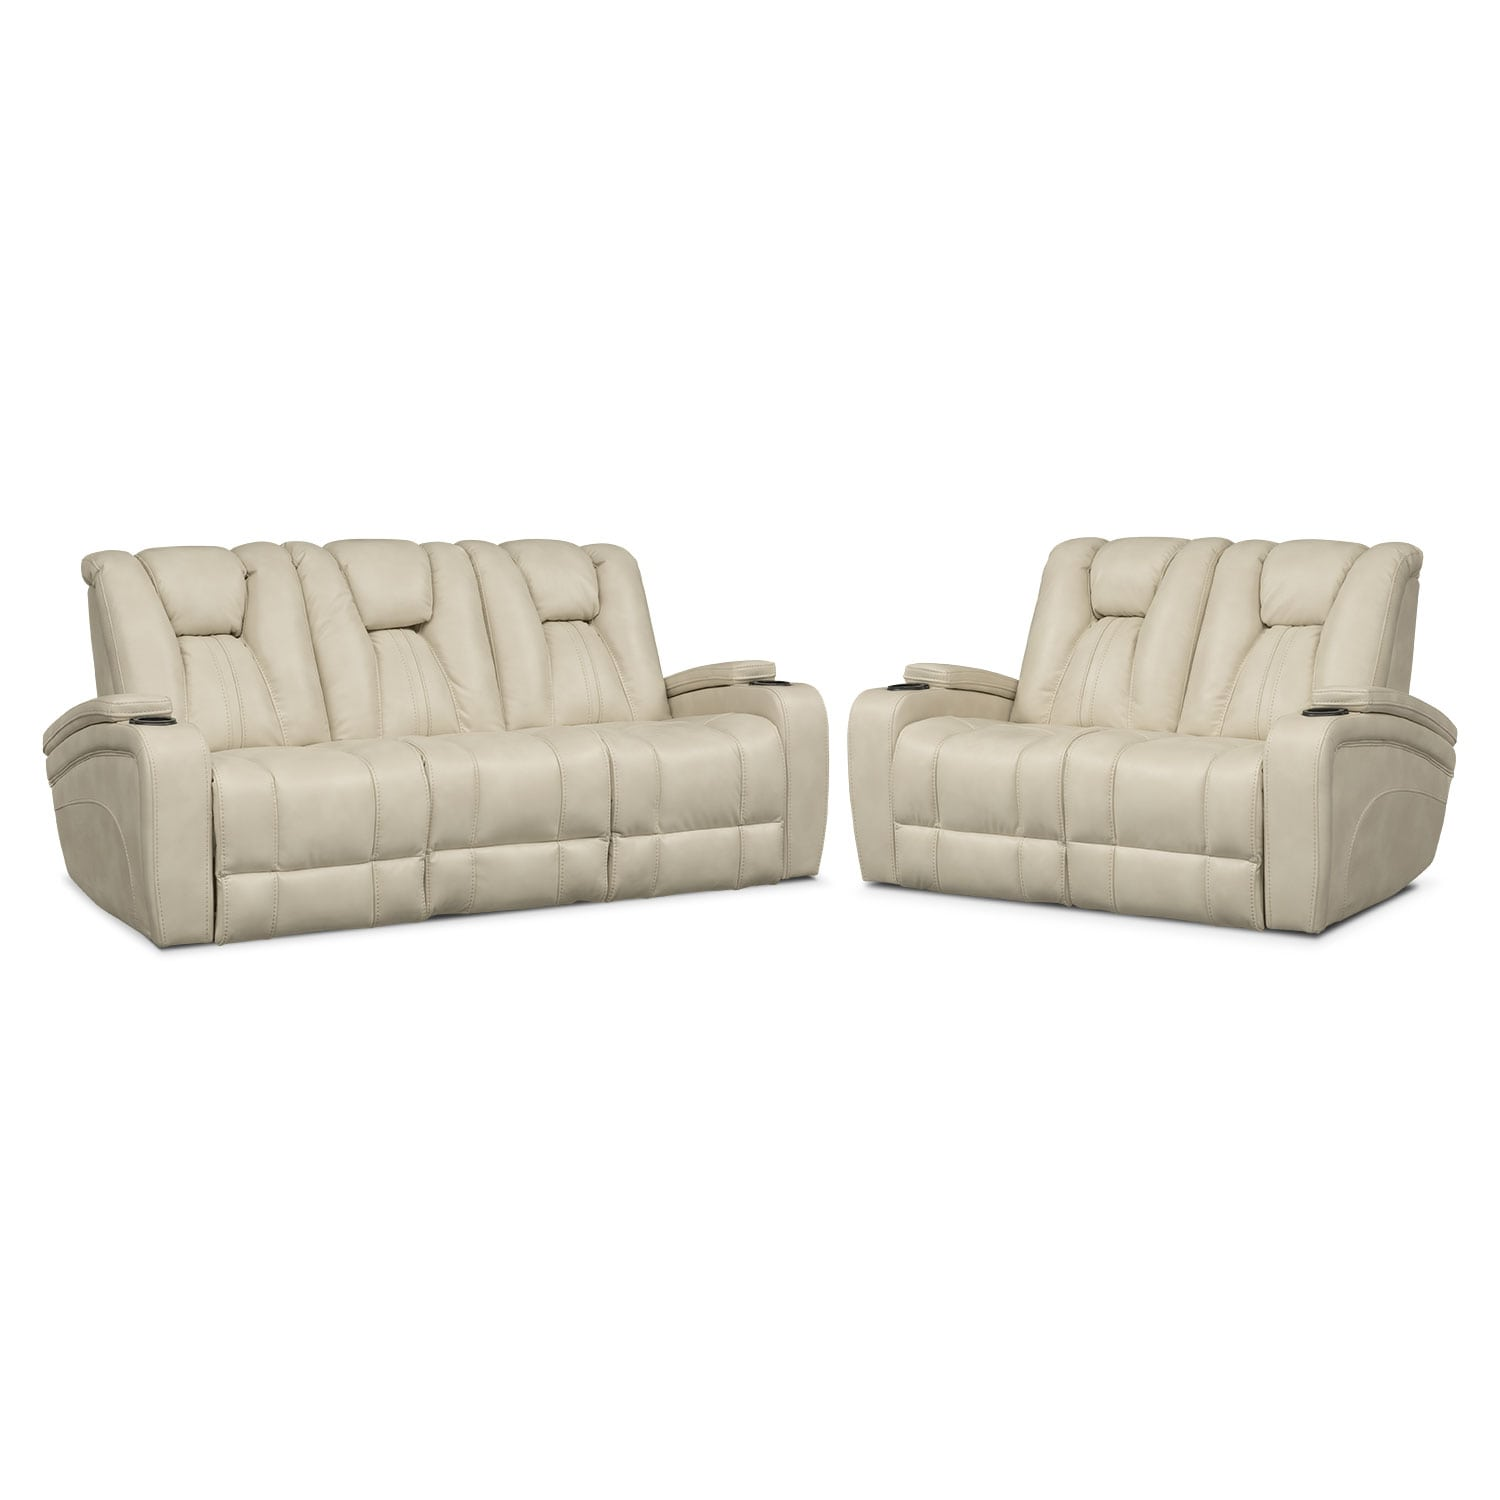 Pulsar dual power reclining sofa and power recliner set Power reclining sofas and loveseats